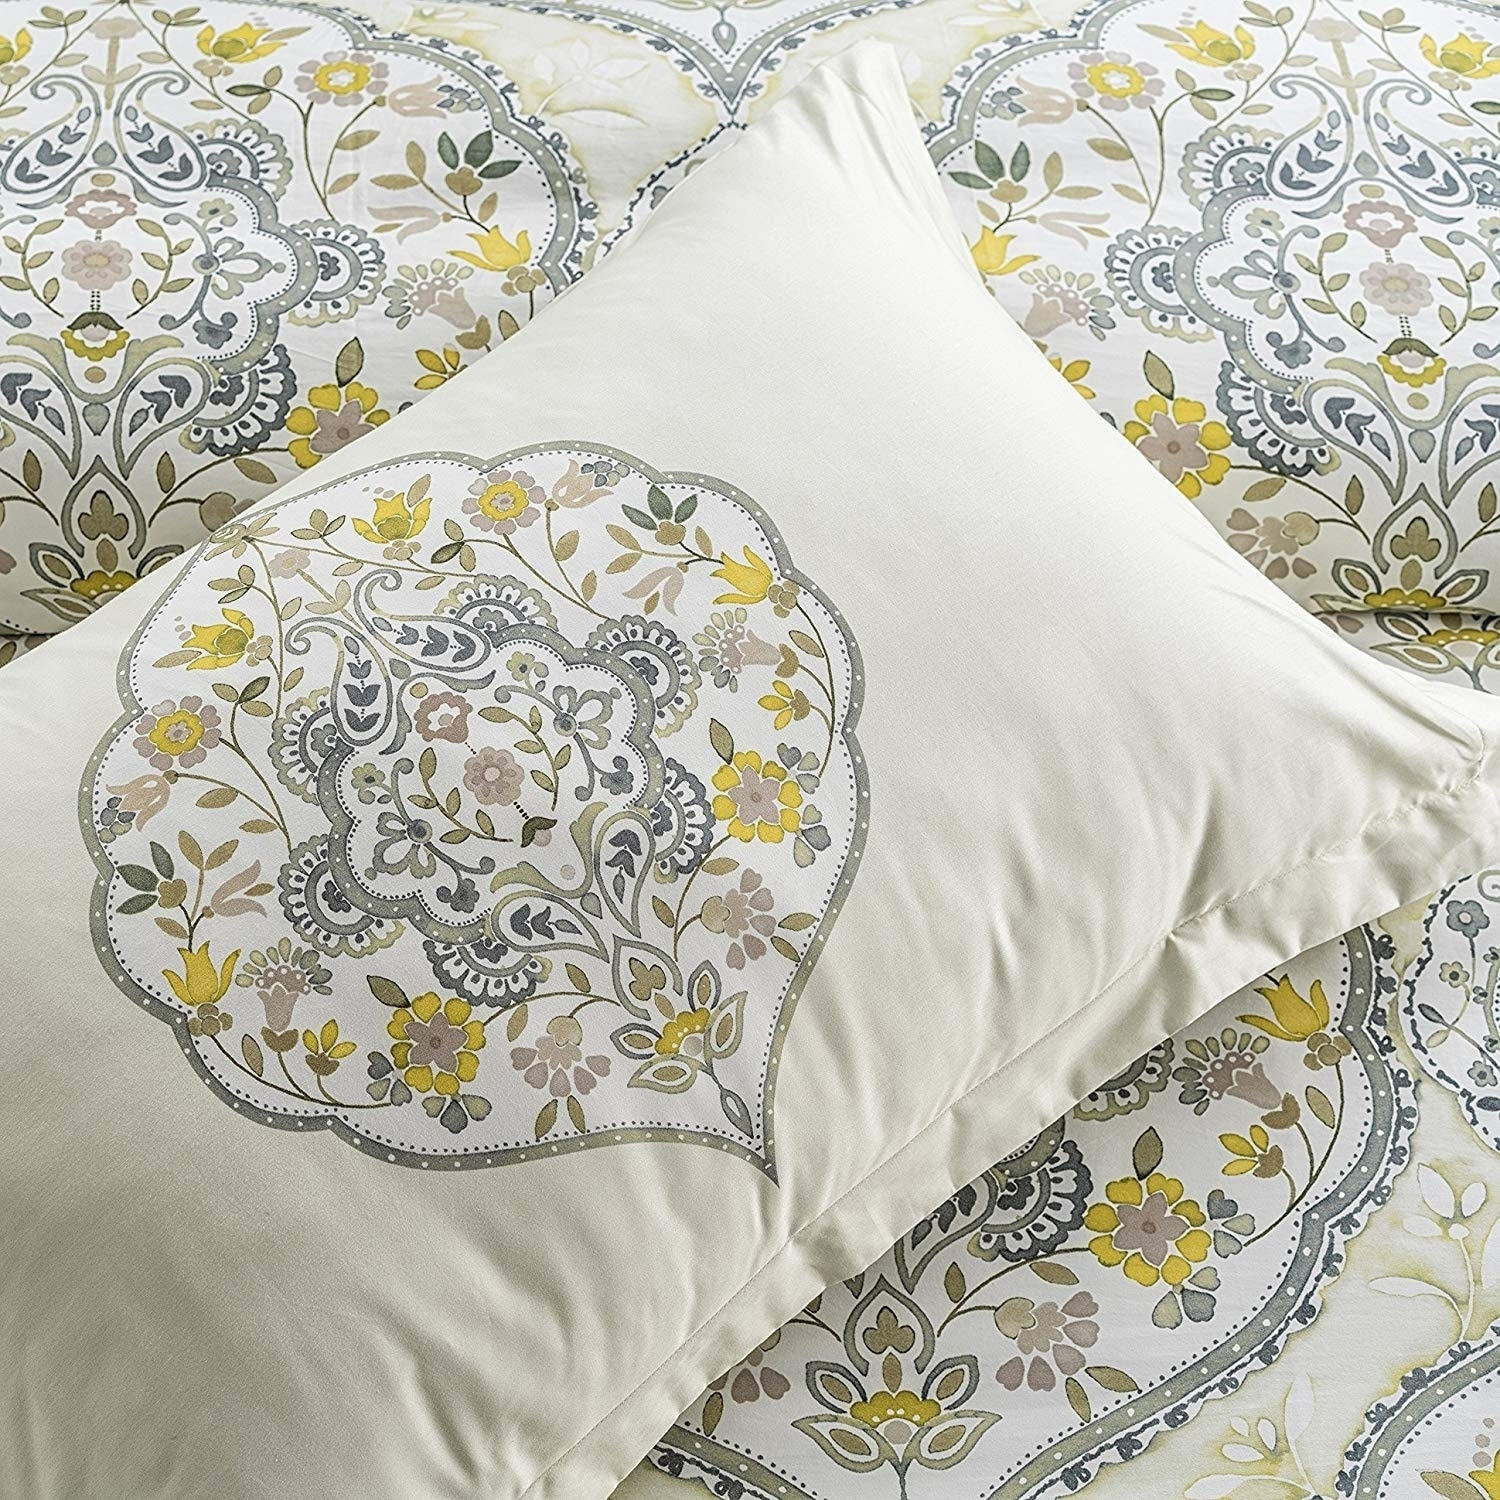 b8dff90e48e03 Shop Gracia Wrinkle Resistant Reversible Print 100% Organic Cotton Duvet  Cover and Sham Set of 2 - Free Shipping Today - Overstock - 23112938